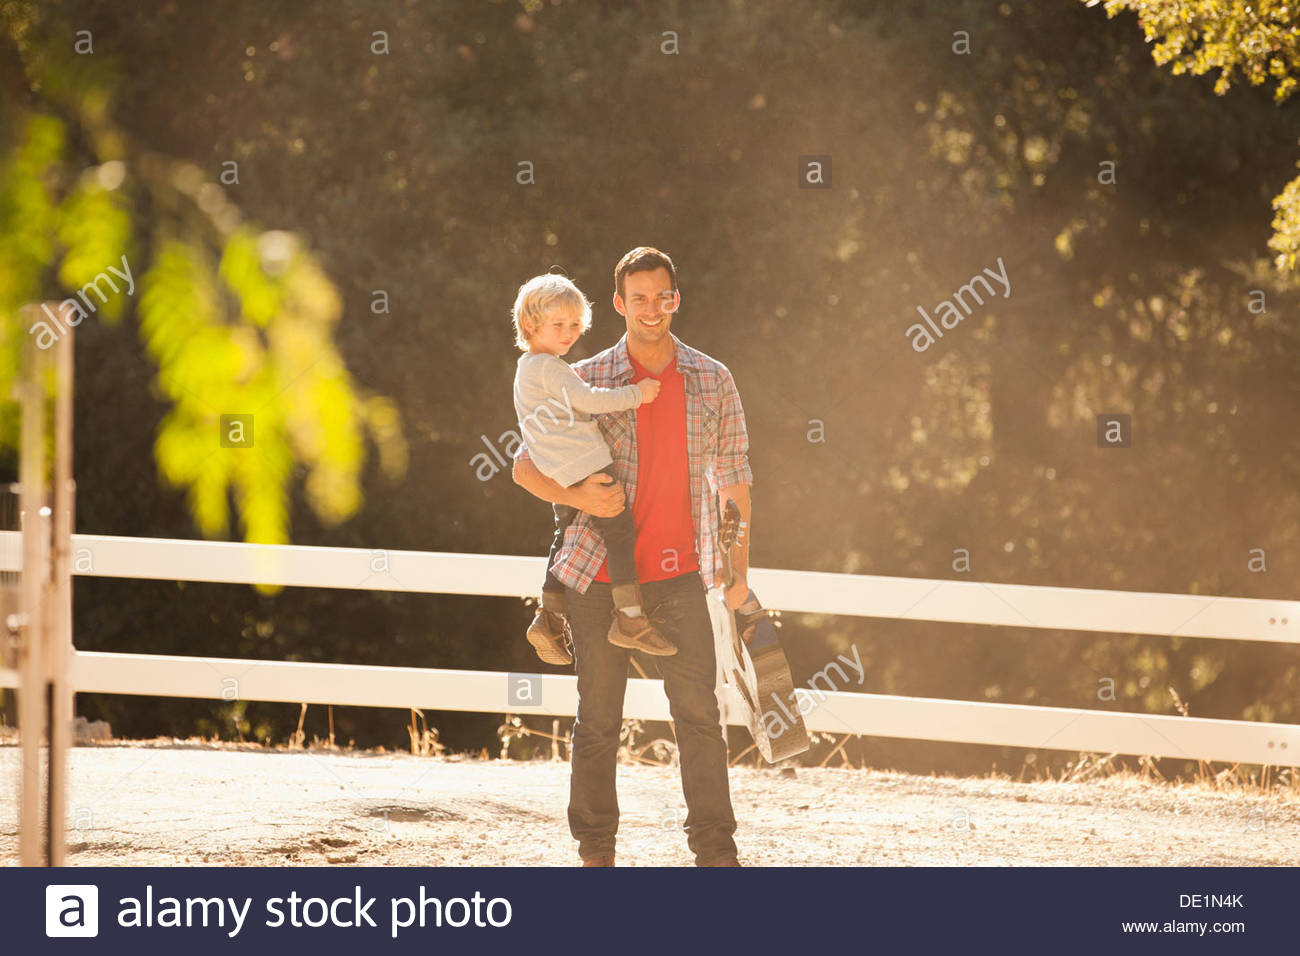 Father carrying son and guitar outdoors - Stock Image